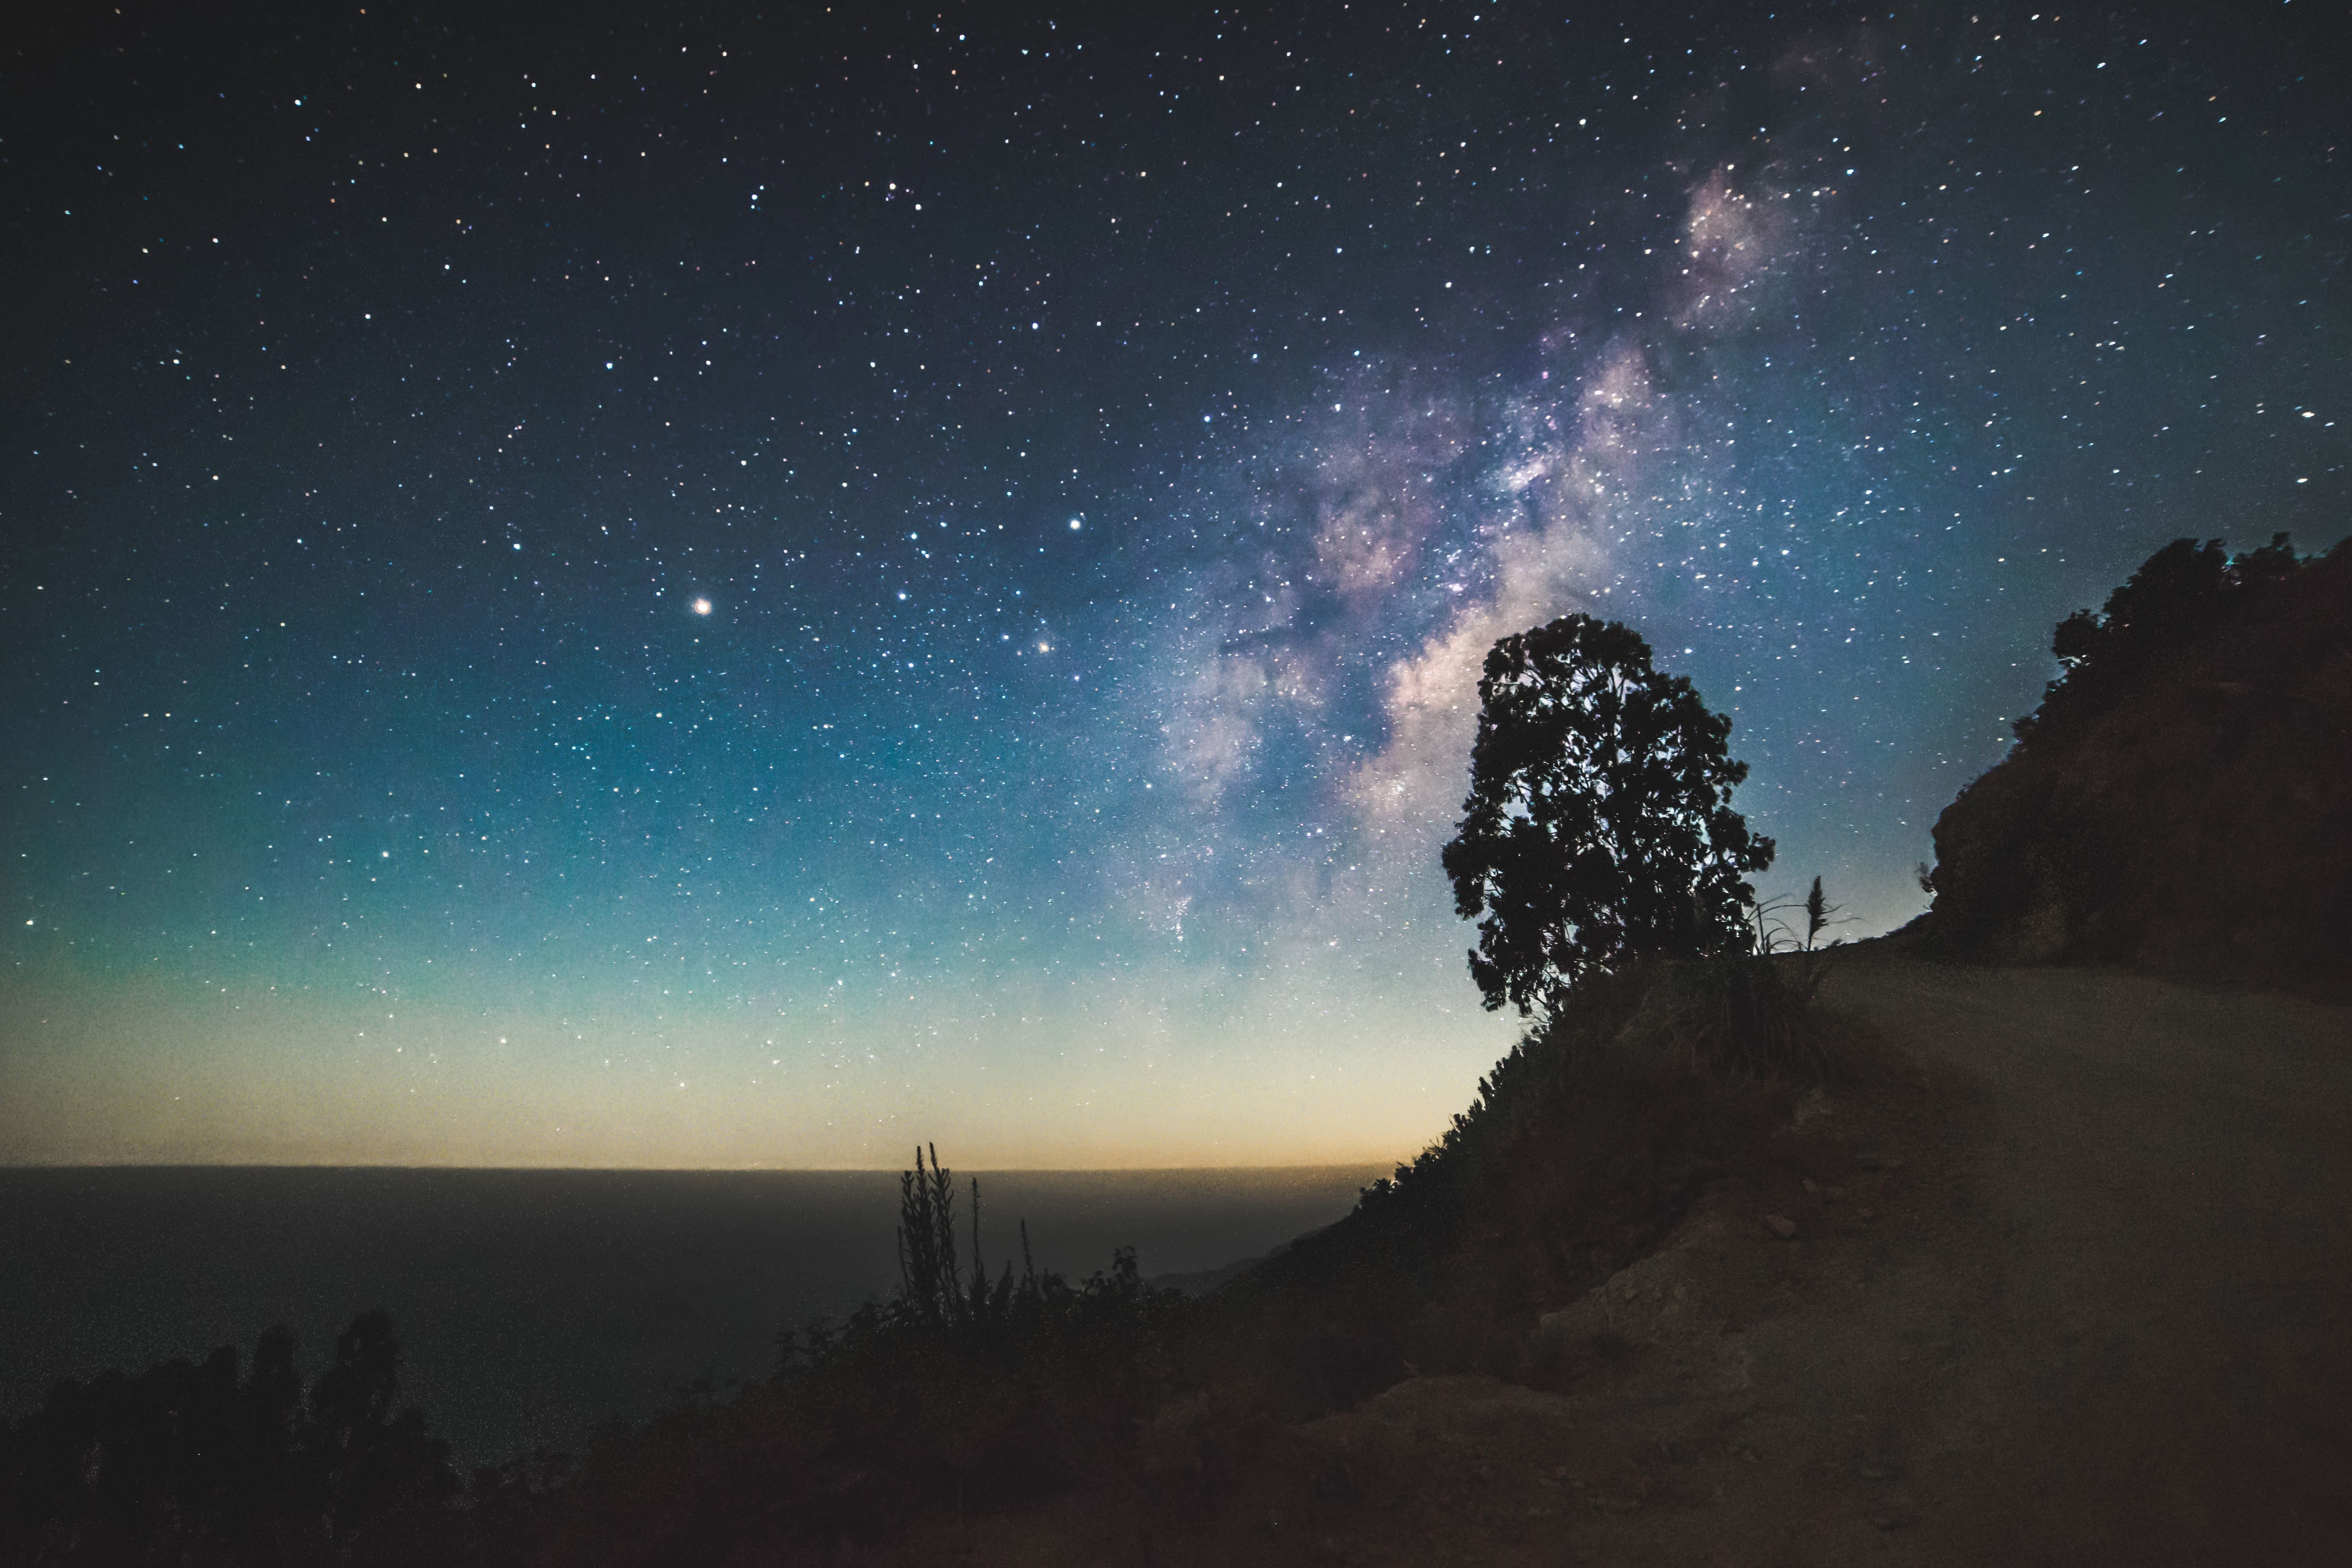 free picture  silhouette  sky  stars  cosmos  milky way  mountain